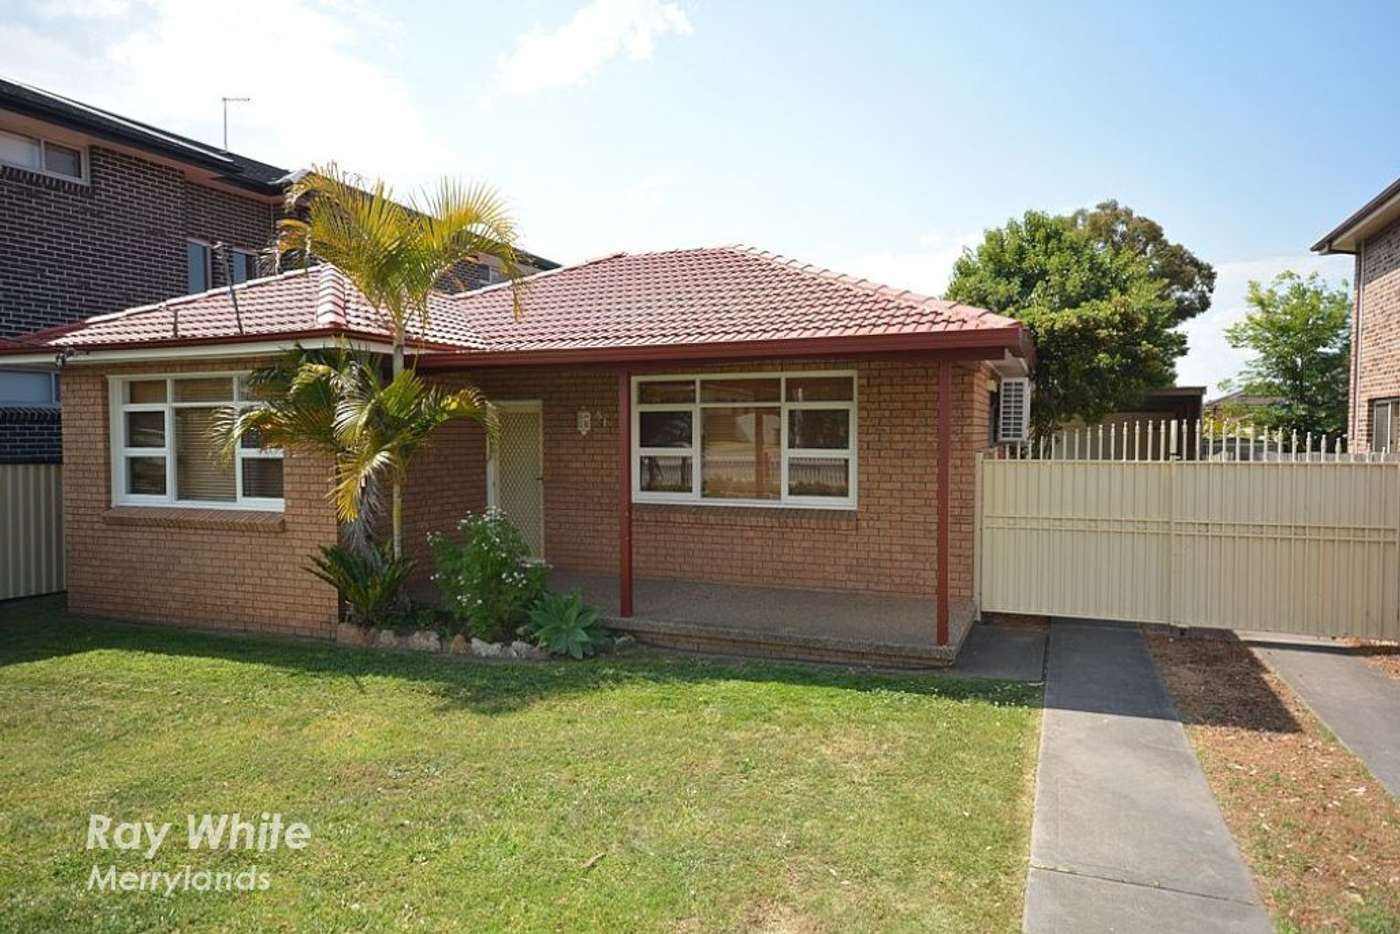 Main view of Homely house listing, 51 Paton Street, Merrylands NSW 2160